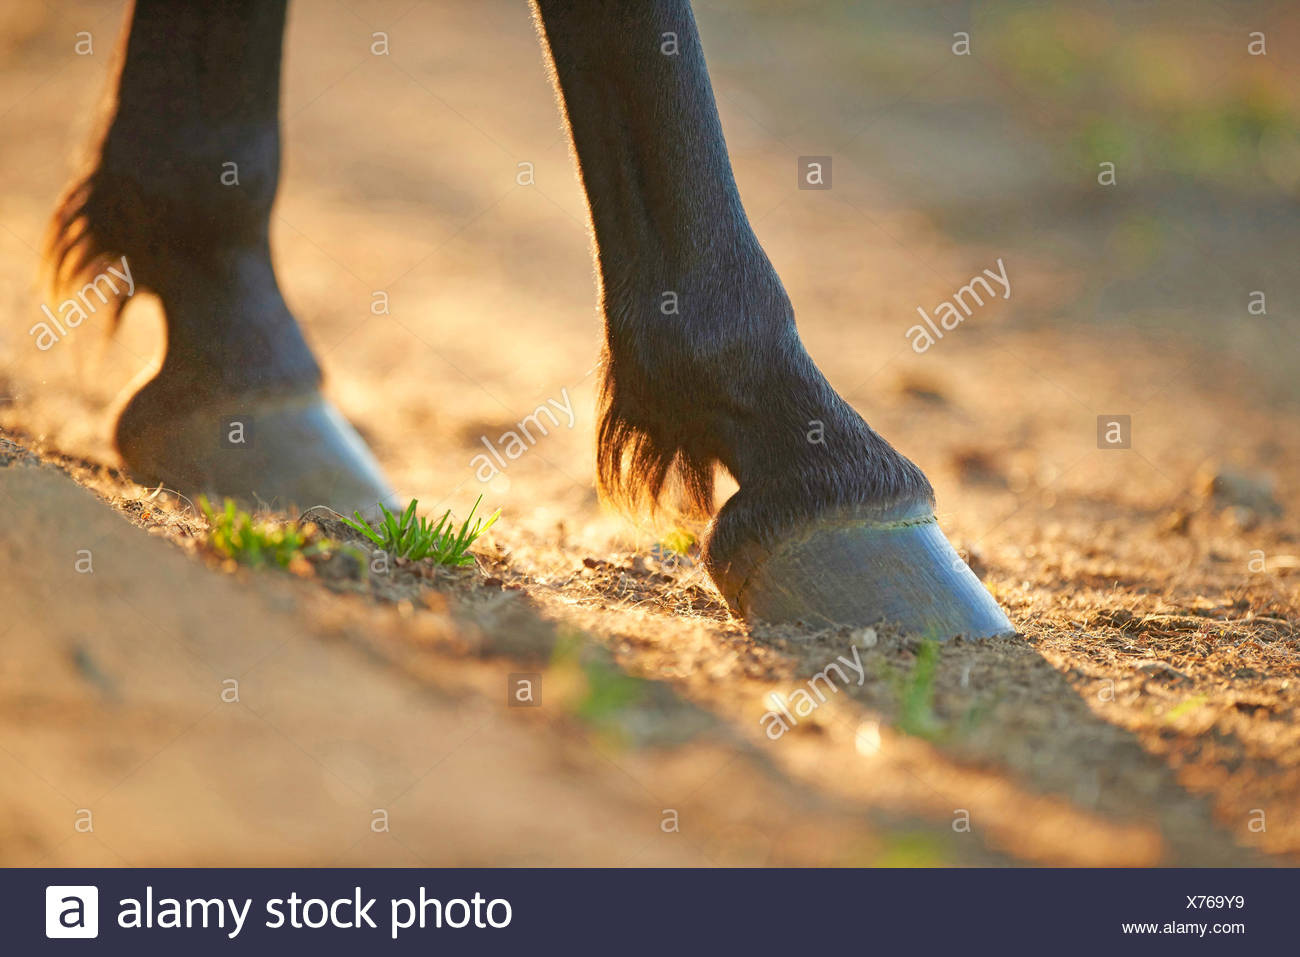 Domestic donkey (Equus asinus asinus), two hooves of a donkey, Germany - Stock Image